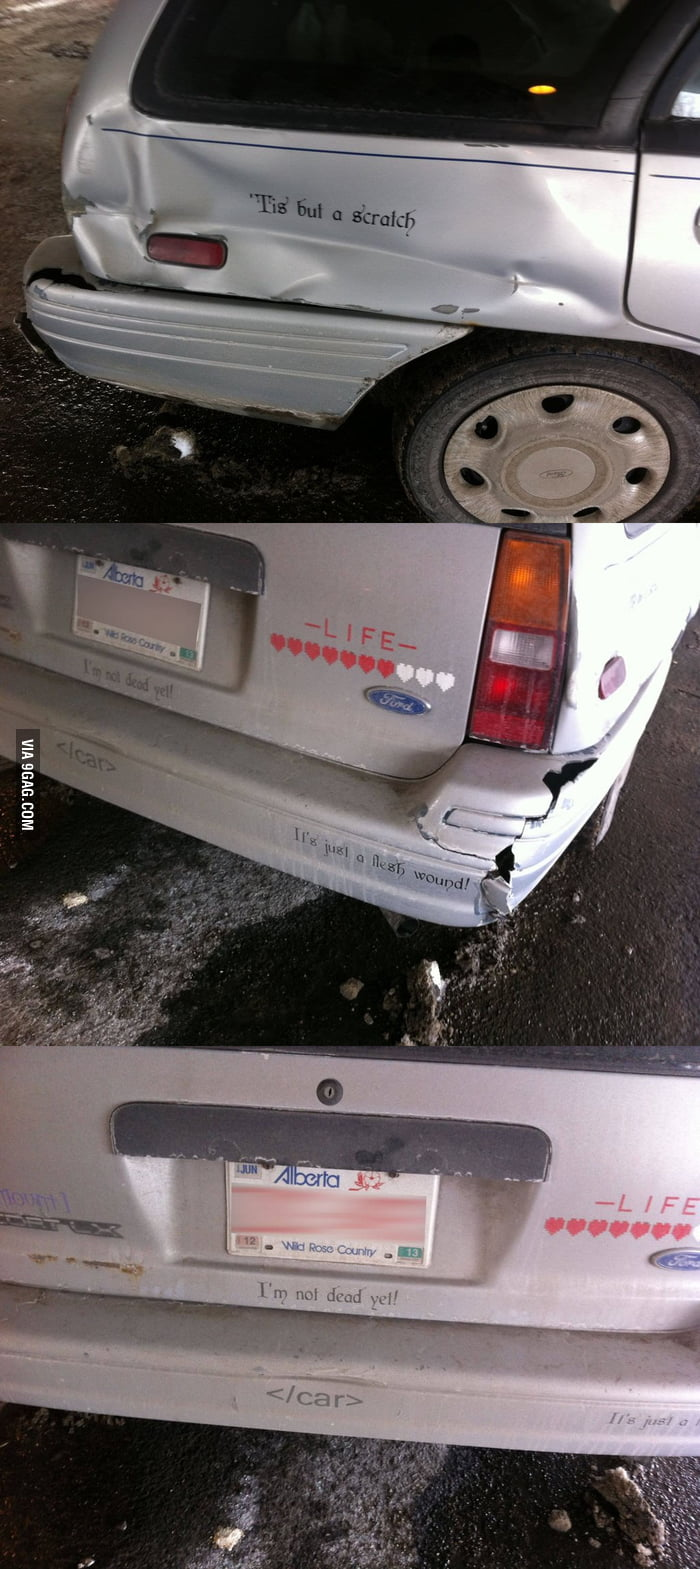 Making the best of a damaged car